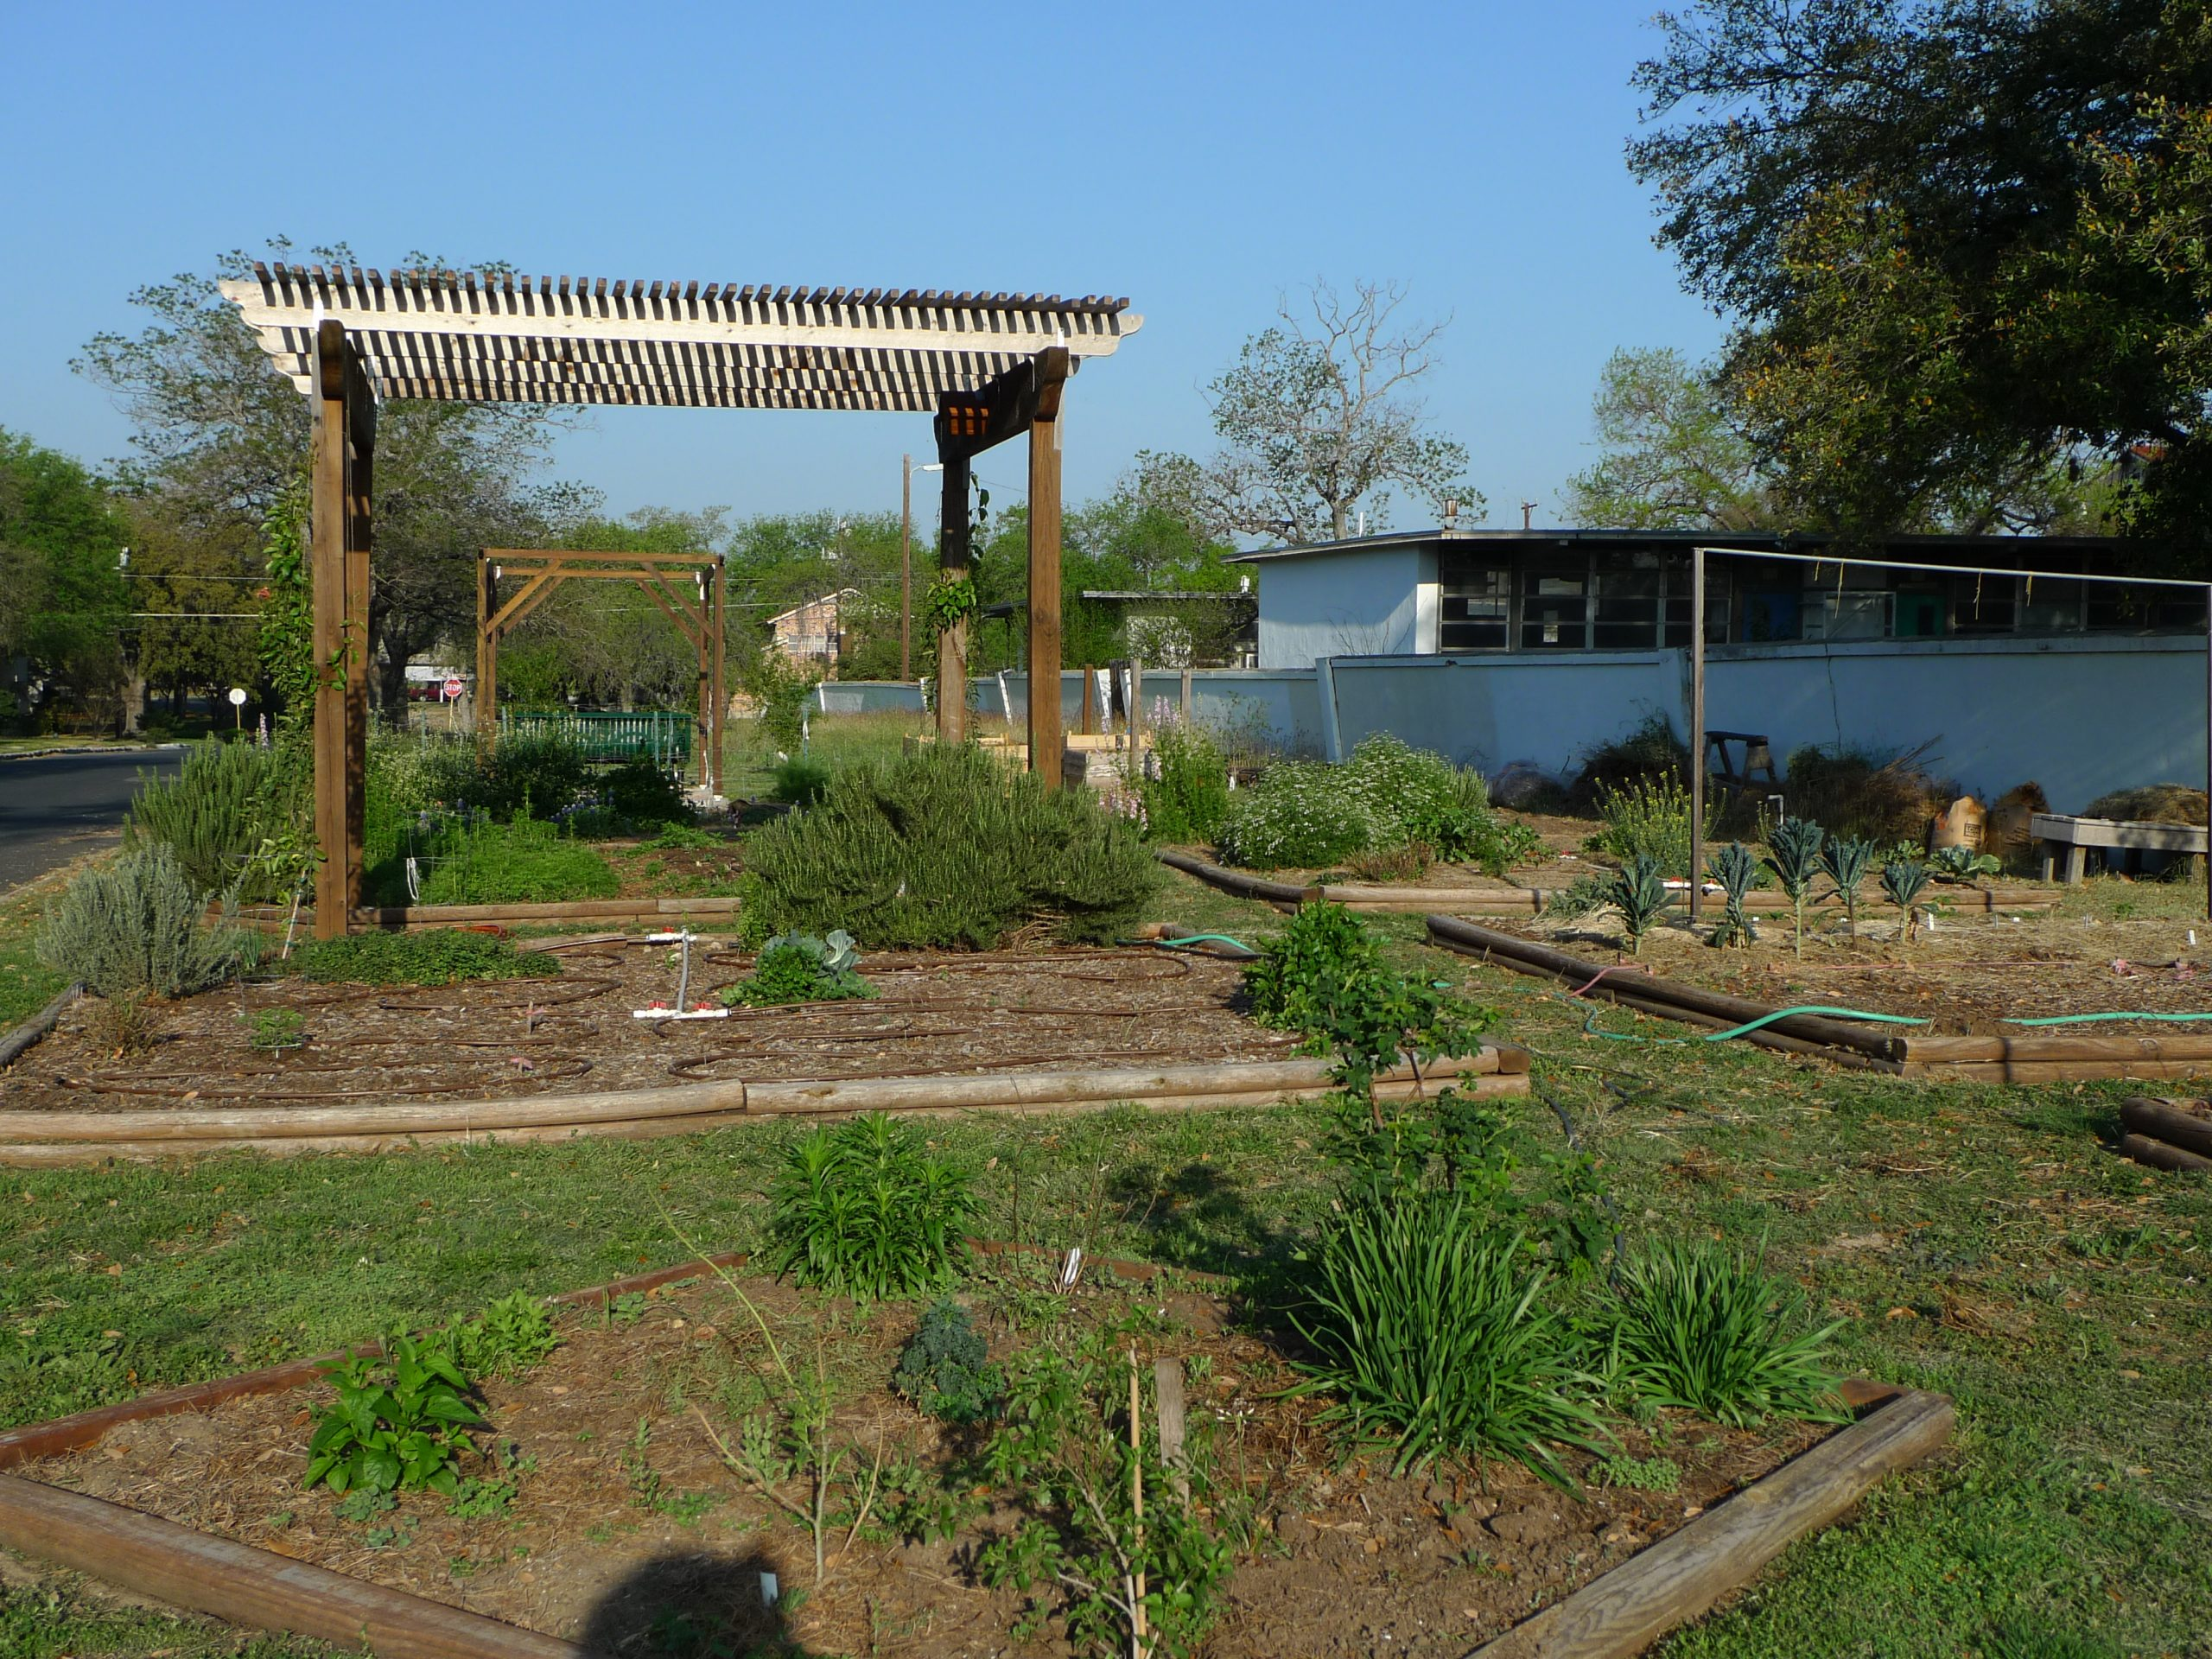 The Jefferson community garden near Jefferson United Methodist Church at 2350 W. Gramercy Place. The garden space includes two park benches, two pagodas, and 4 compost bins.